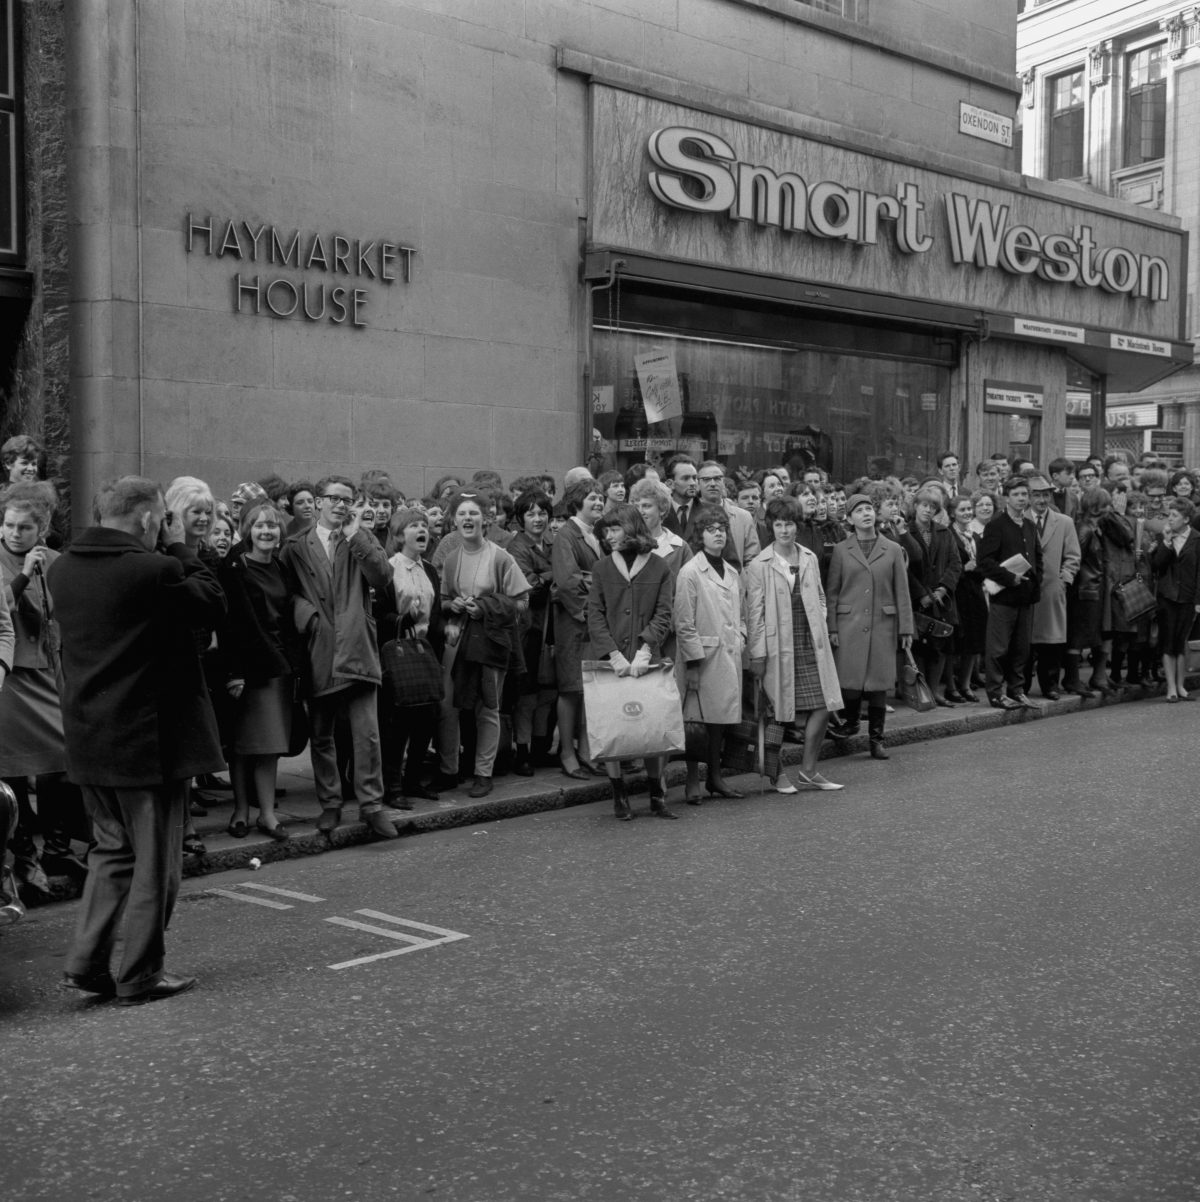 Beatles fans outside the Prince of Wales Theatre in London wait to catch a glimpse of their idols who were taking part in rehearsals for tonight's Royal Variety Performance.